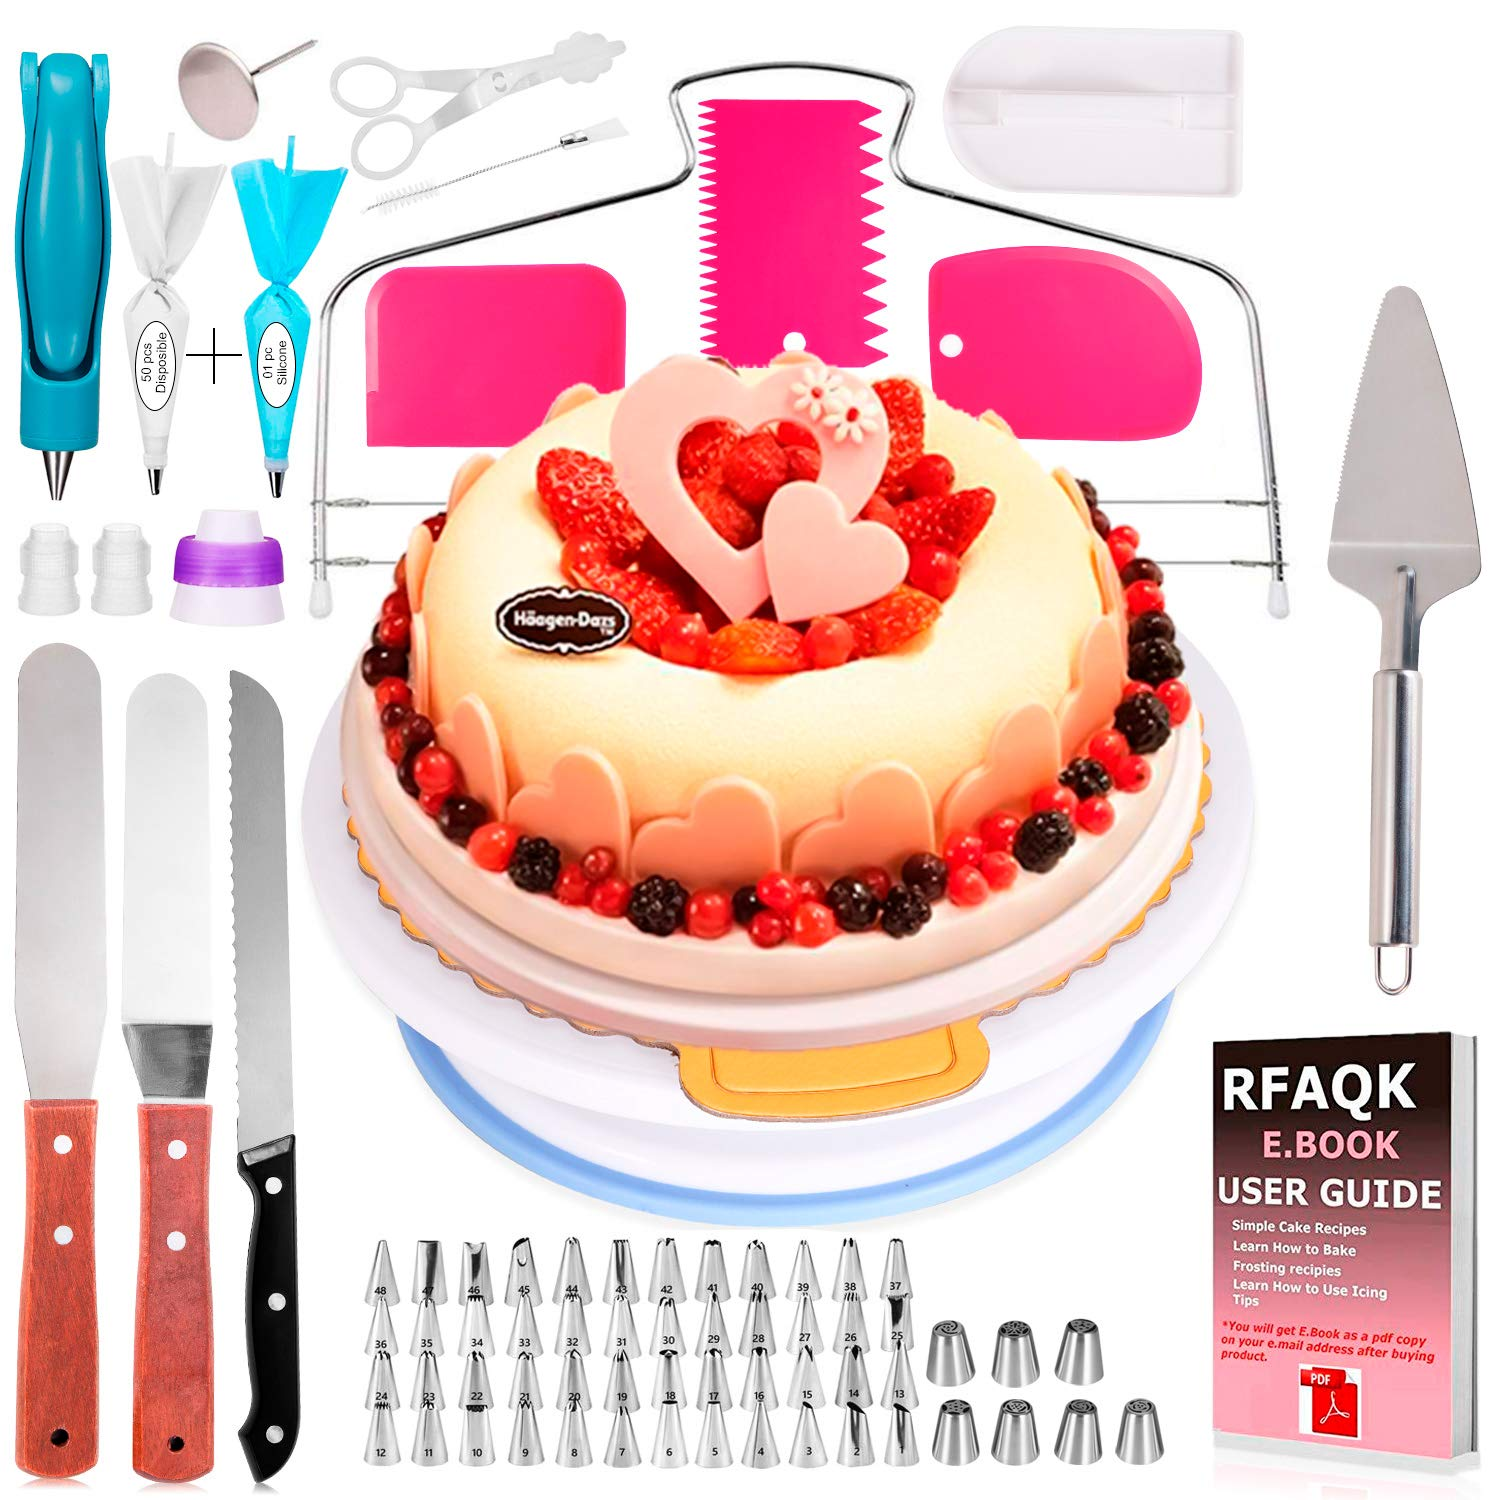 124 Pcs Cake Decorating Supplies Kit - Cake Turntable Stand, 48 Numbered Icing Tips, Piping Bags and Tips Set, Icing Spatulas and Scrapers, Pastry Tools for Baking Beginners